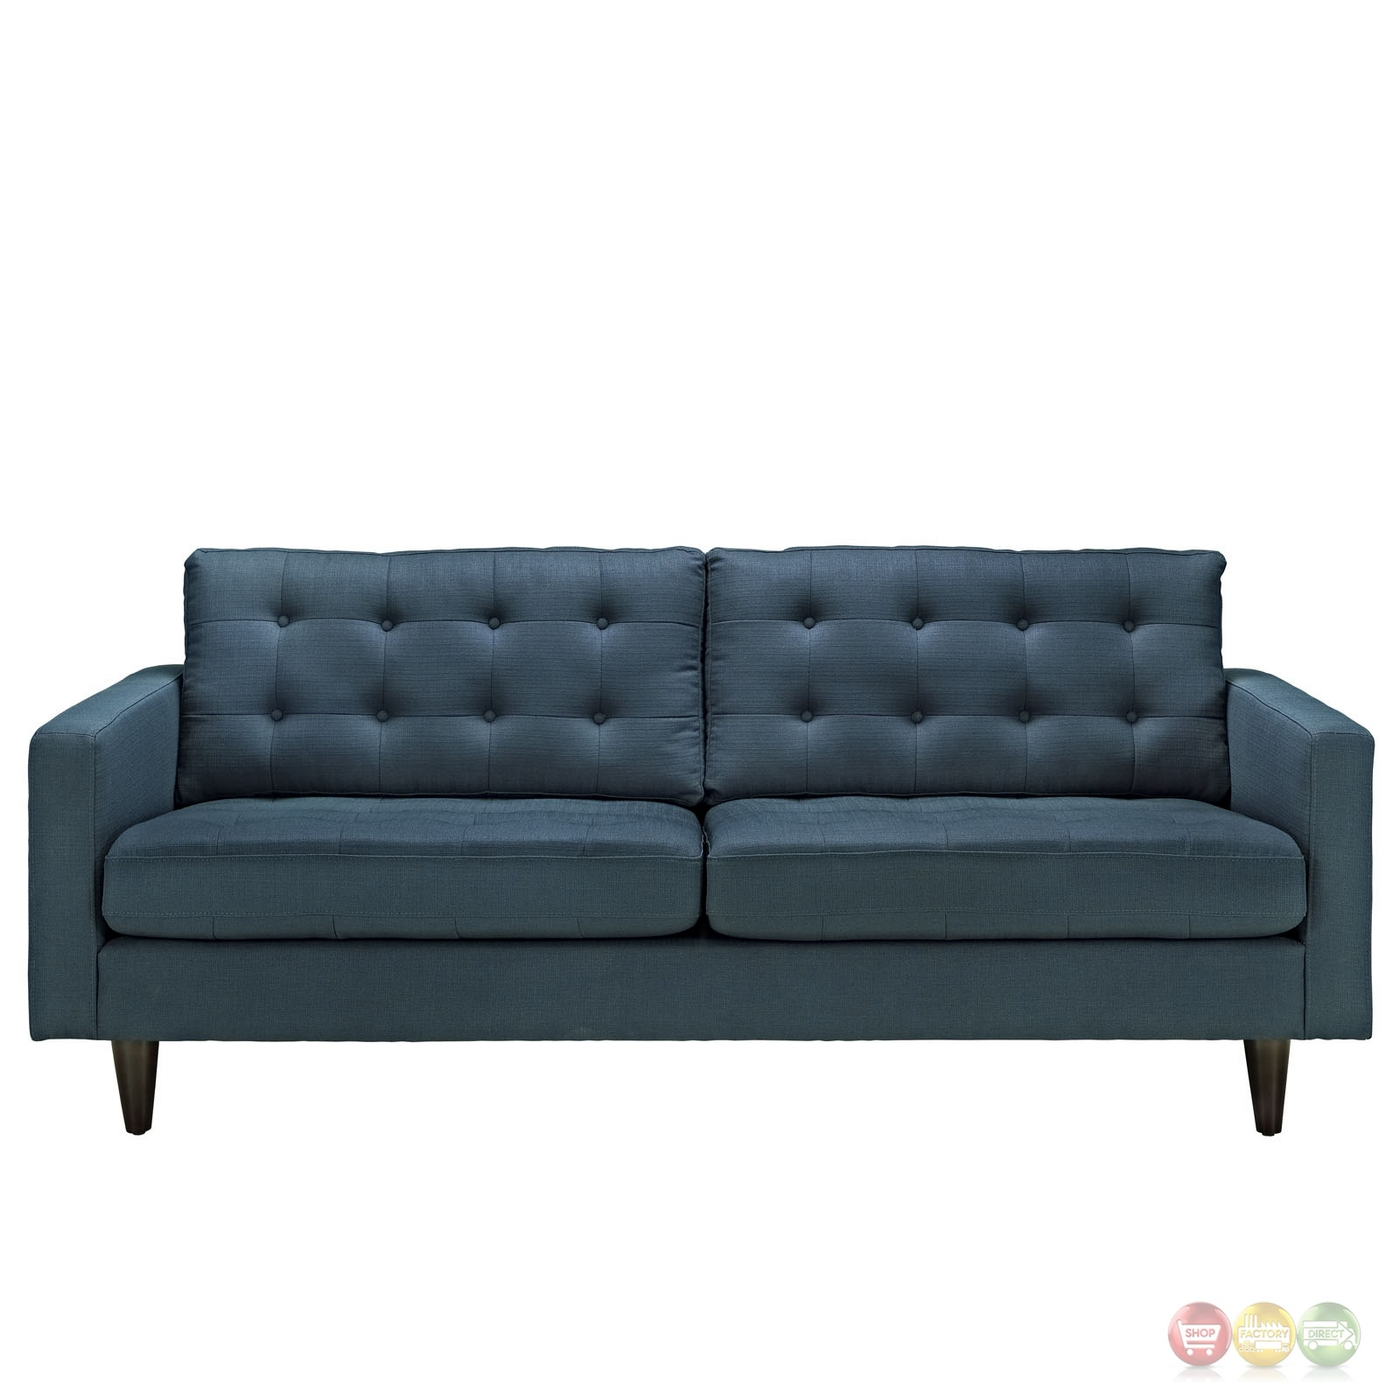 Empress contemporary button tufted upholstered sofa azure for Contemporary furnishings